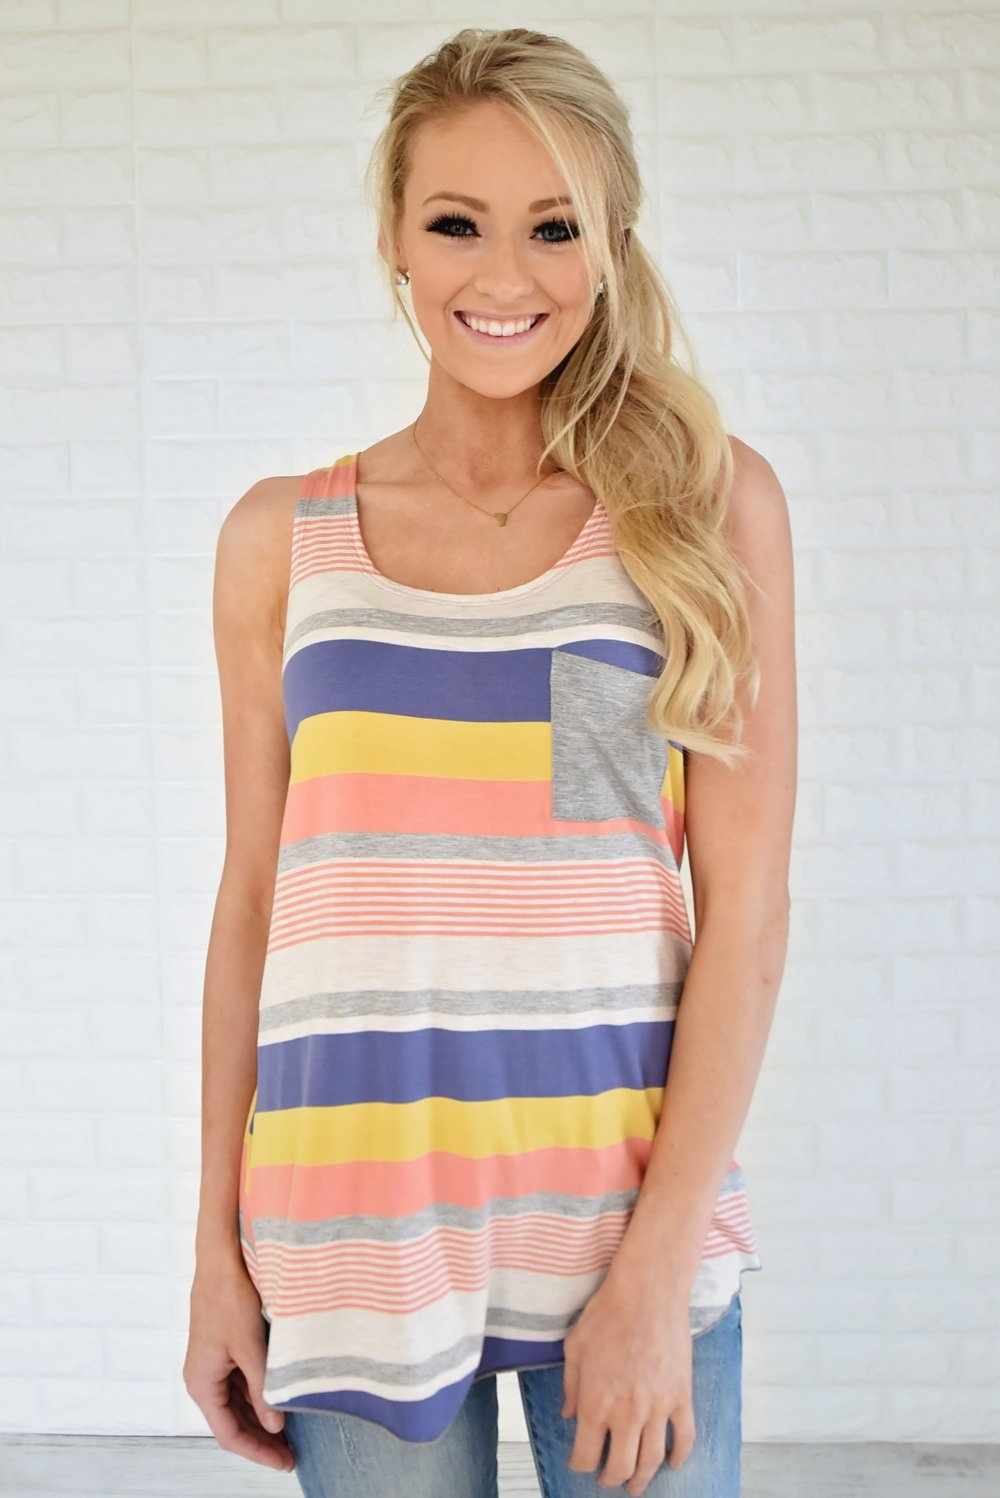 Summertime Love Tank Top ~ Steel Blue, Yellow & Coral